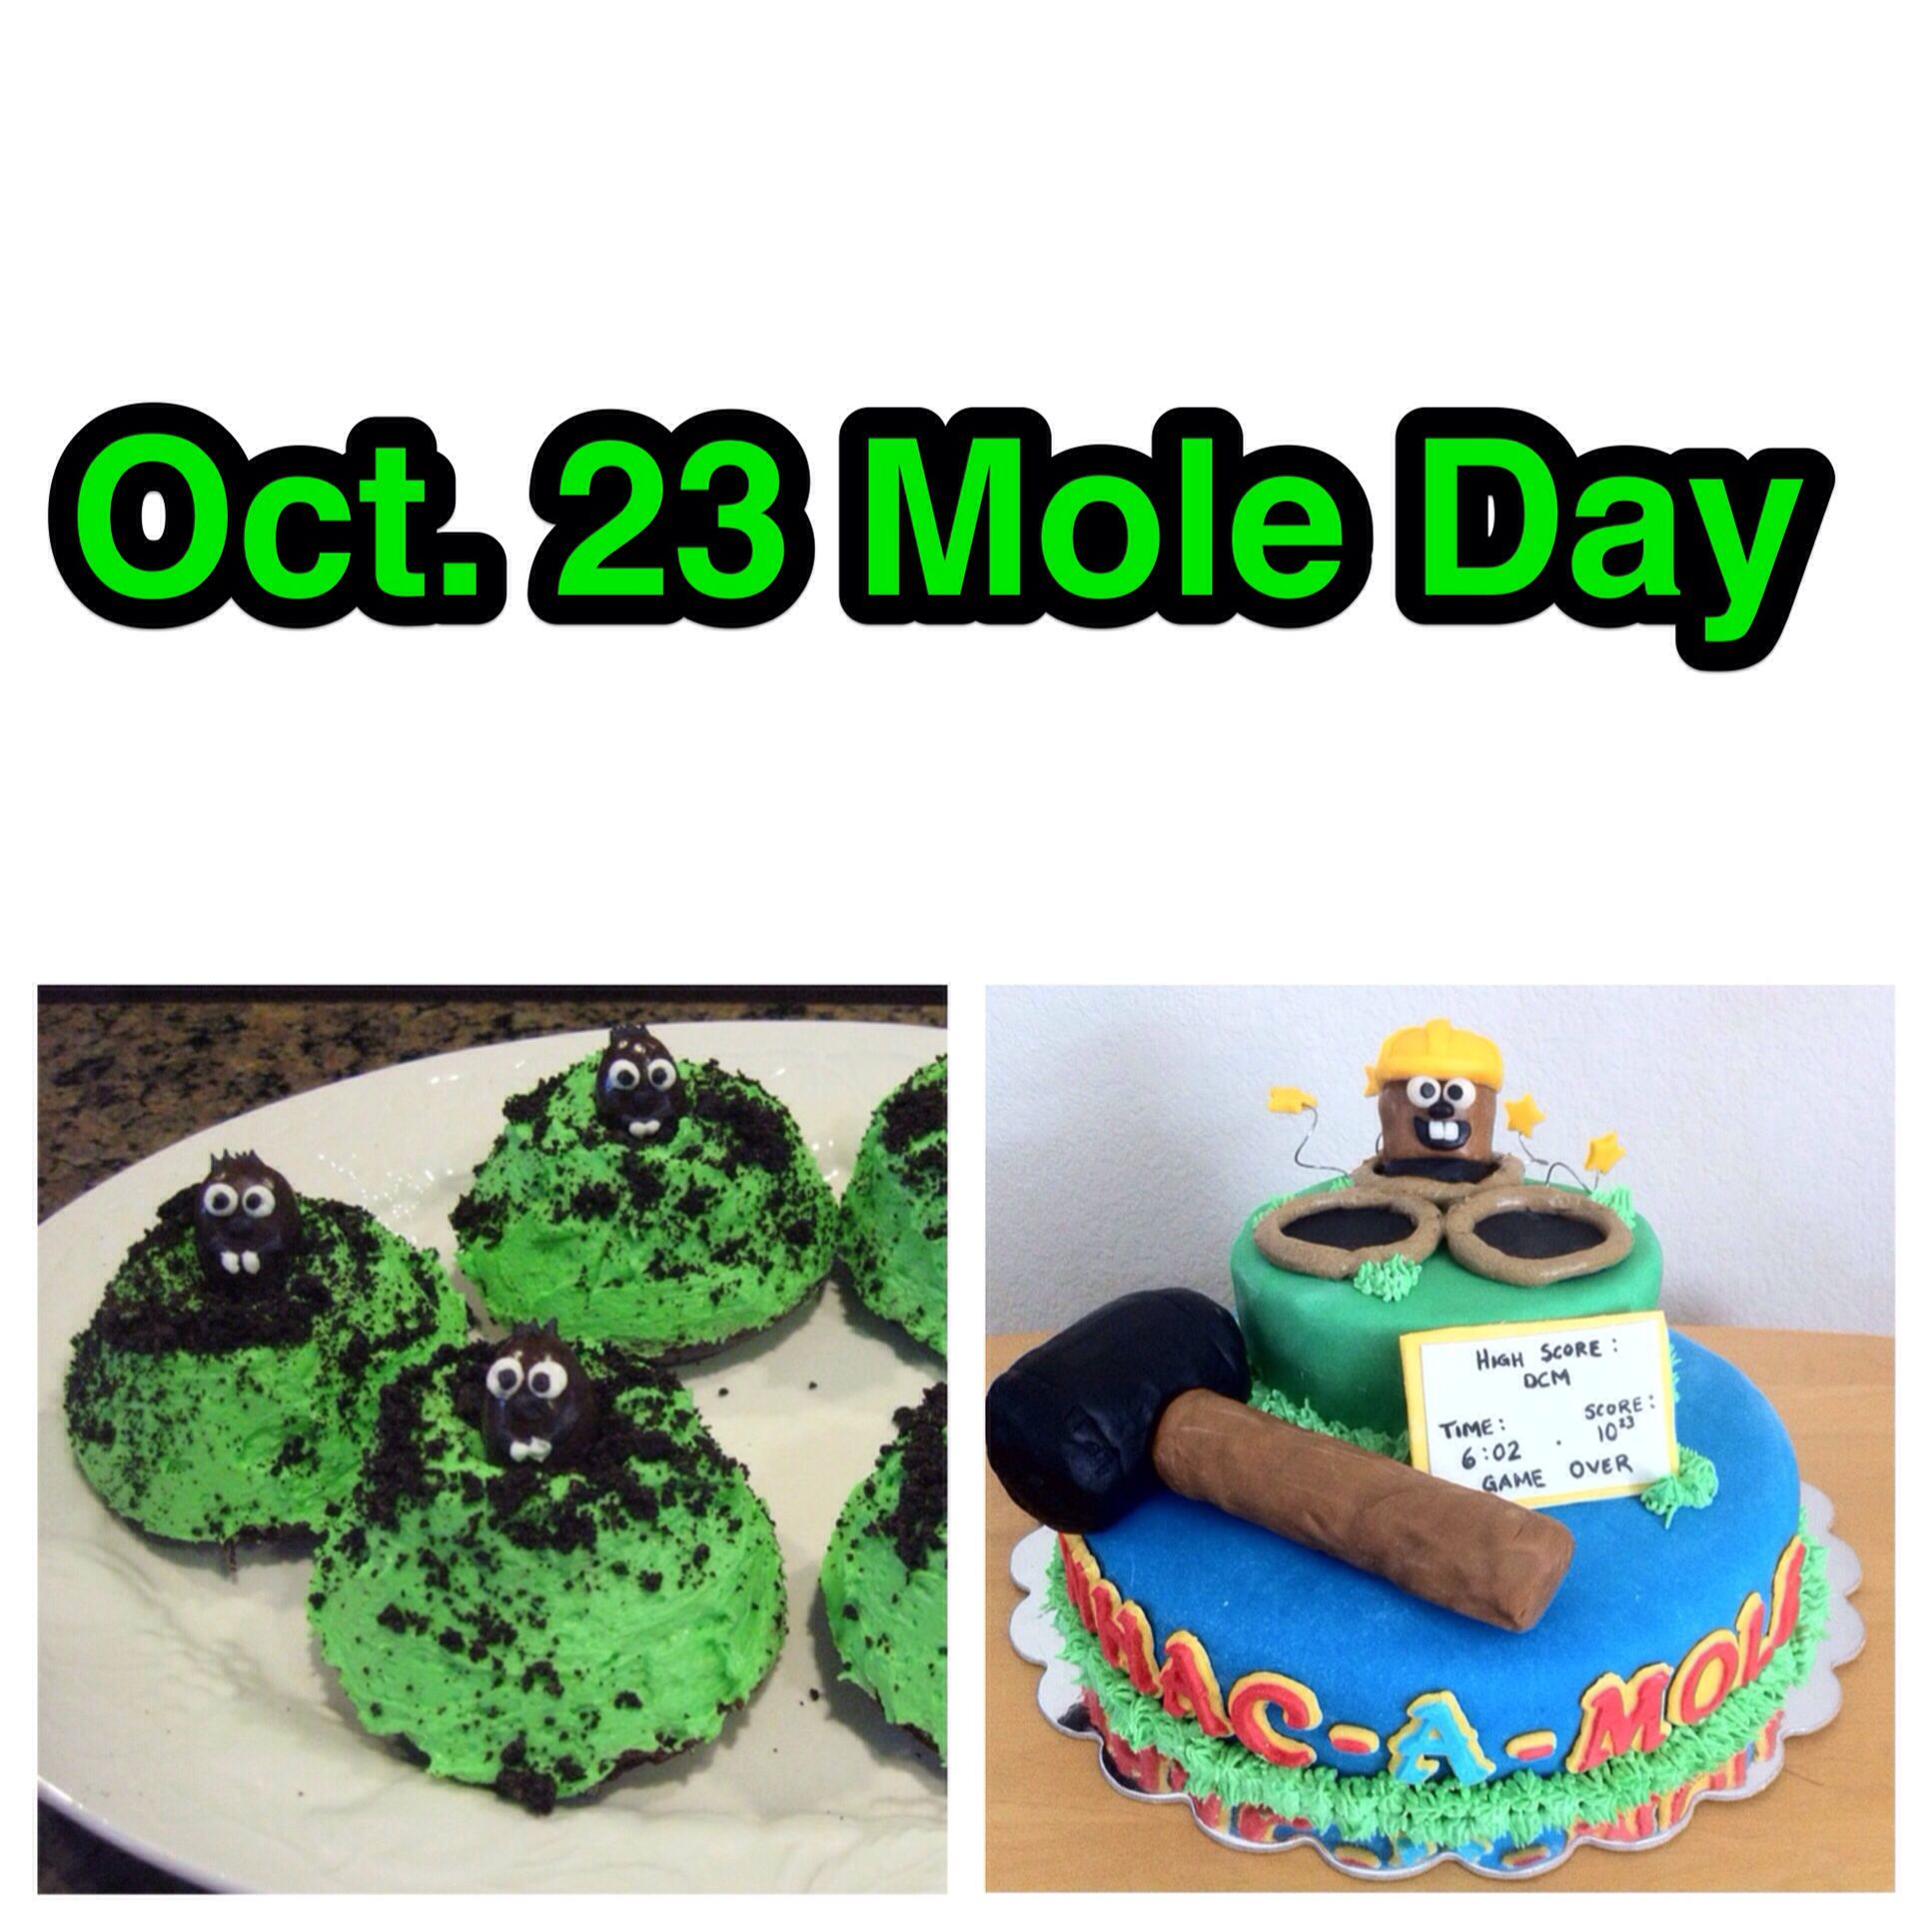 Mole Day Is One Week Away Get Your Mole Cake On Moleday